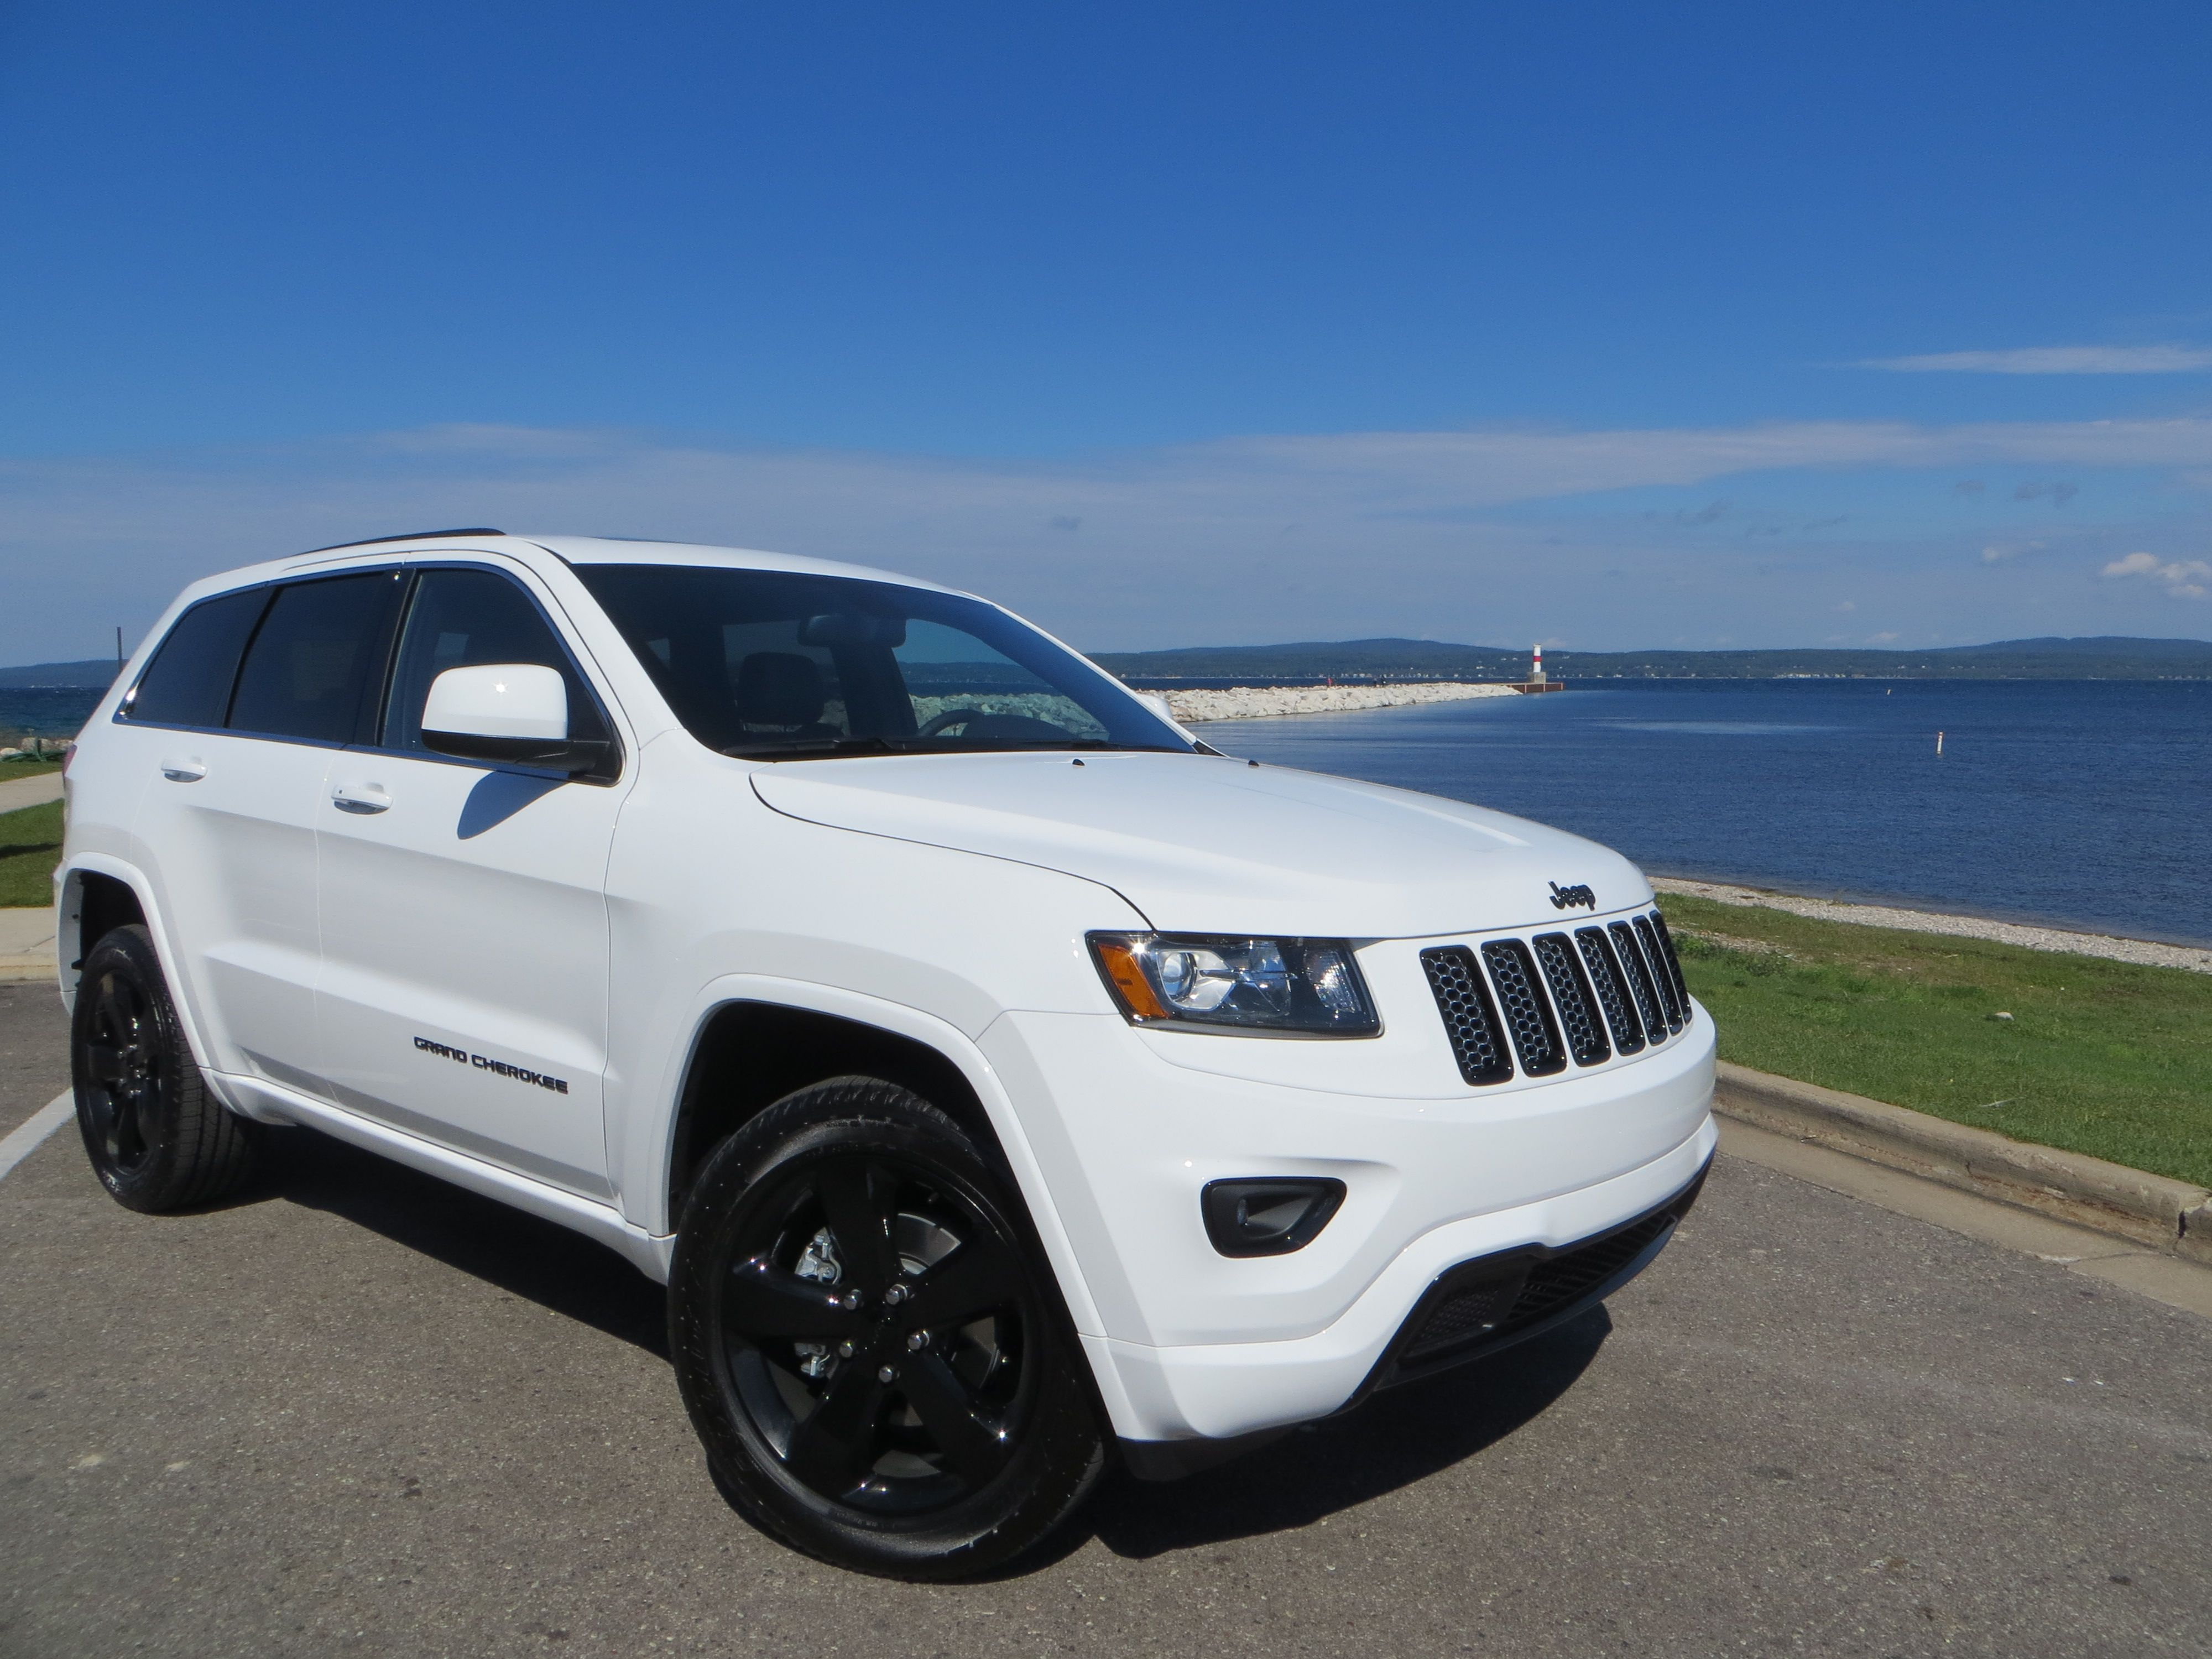 2015 jeep grand cherokee altitude at petoskey waterfront jeep grand cherokee pinterest. Black Bedroom Furniture Sets. Home Design Ideas